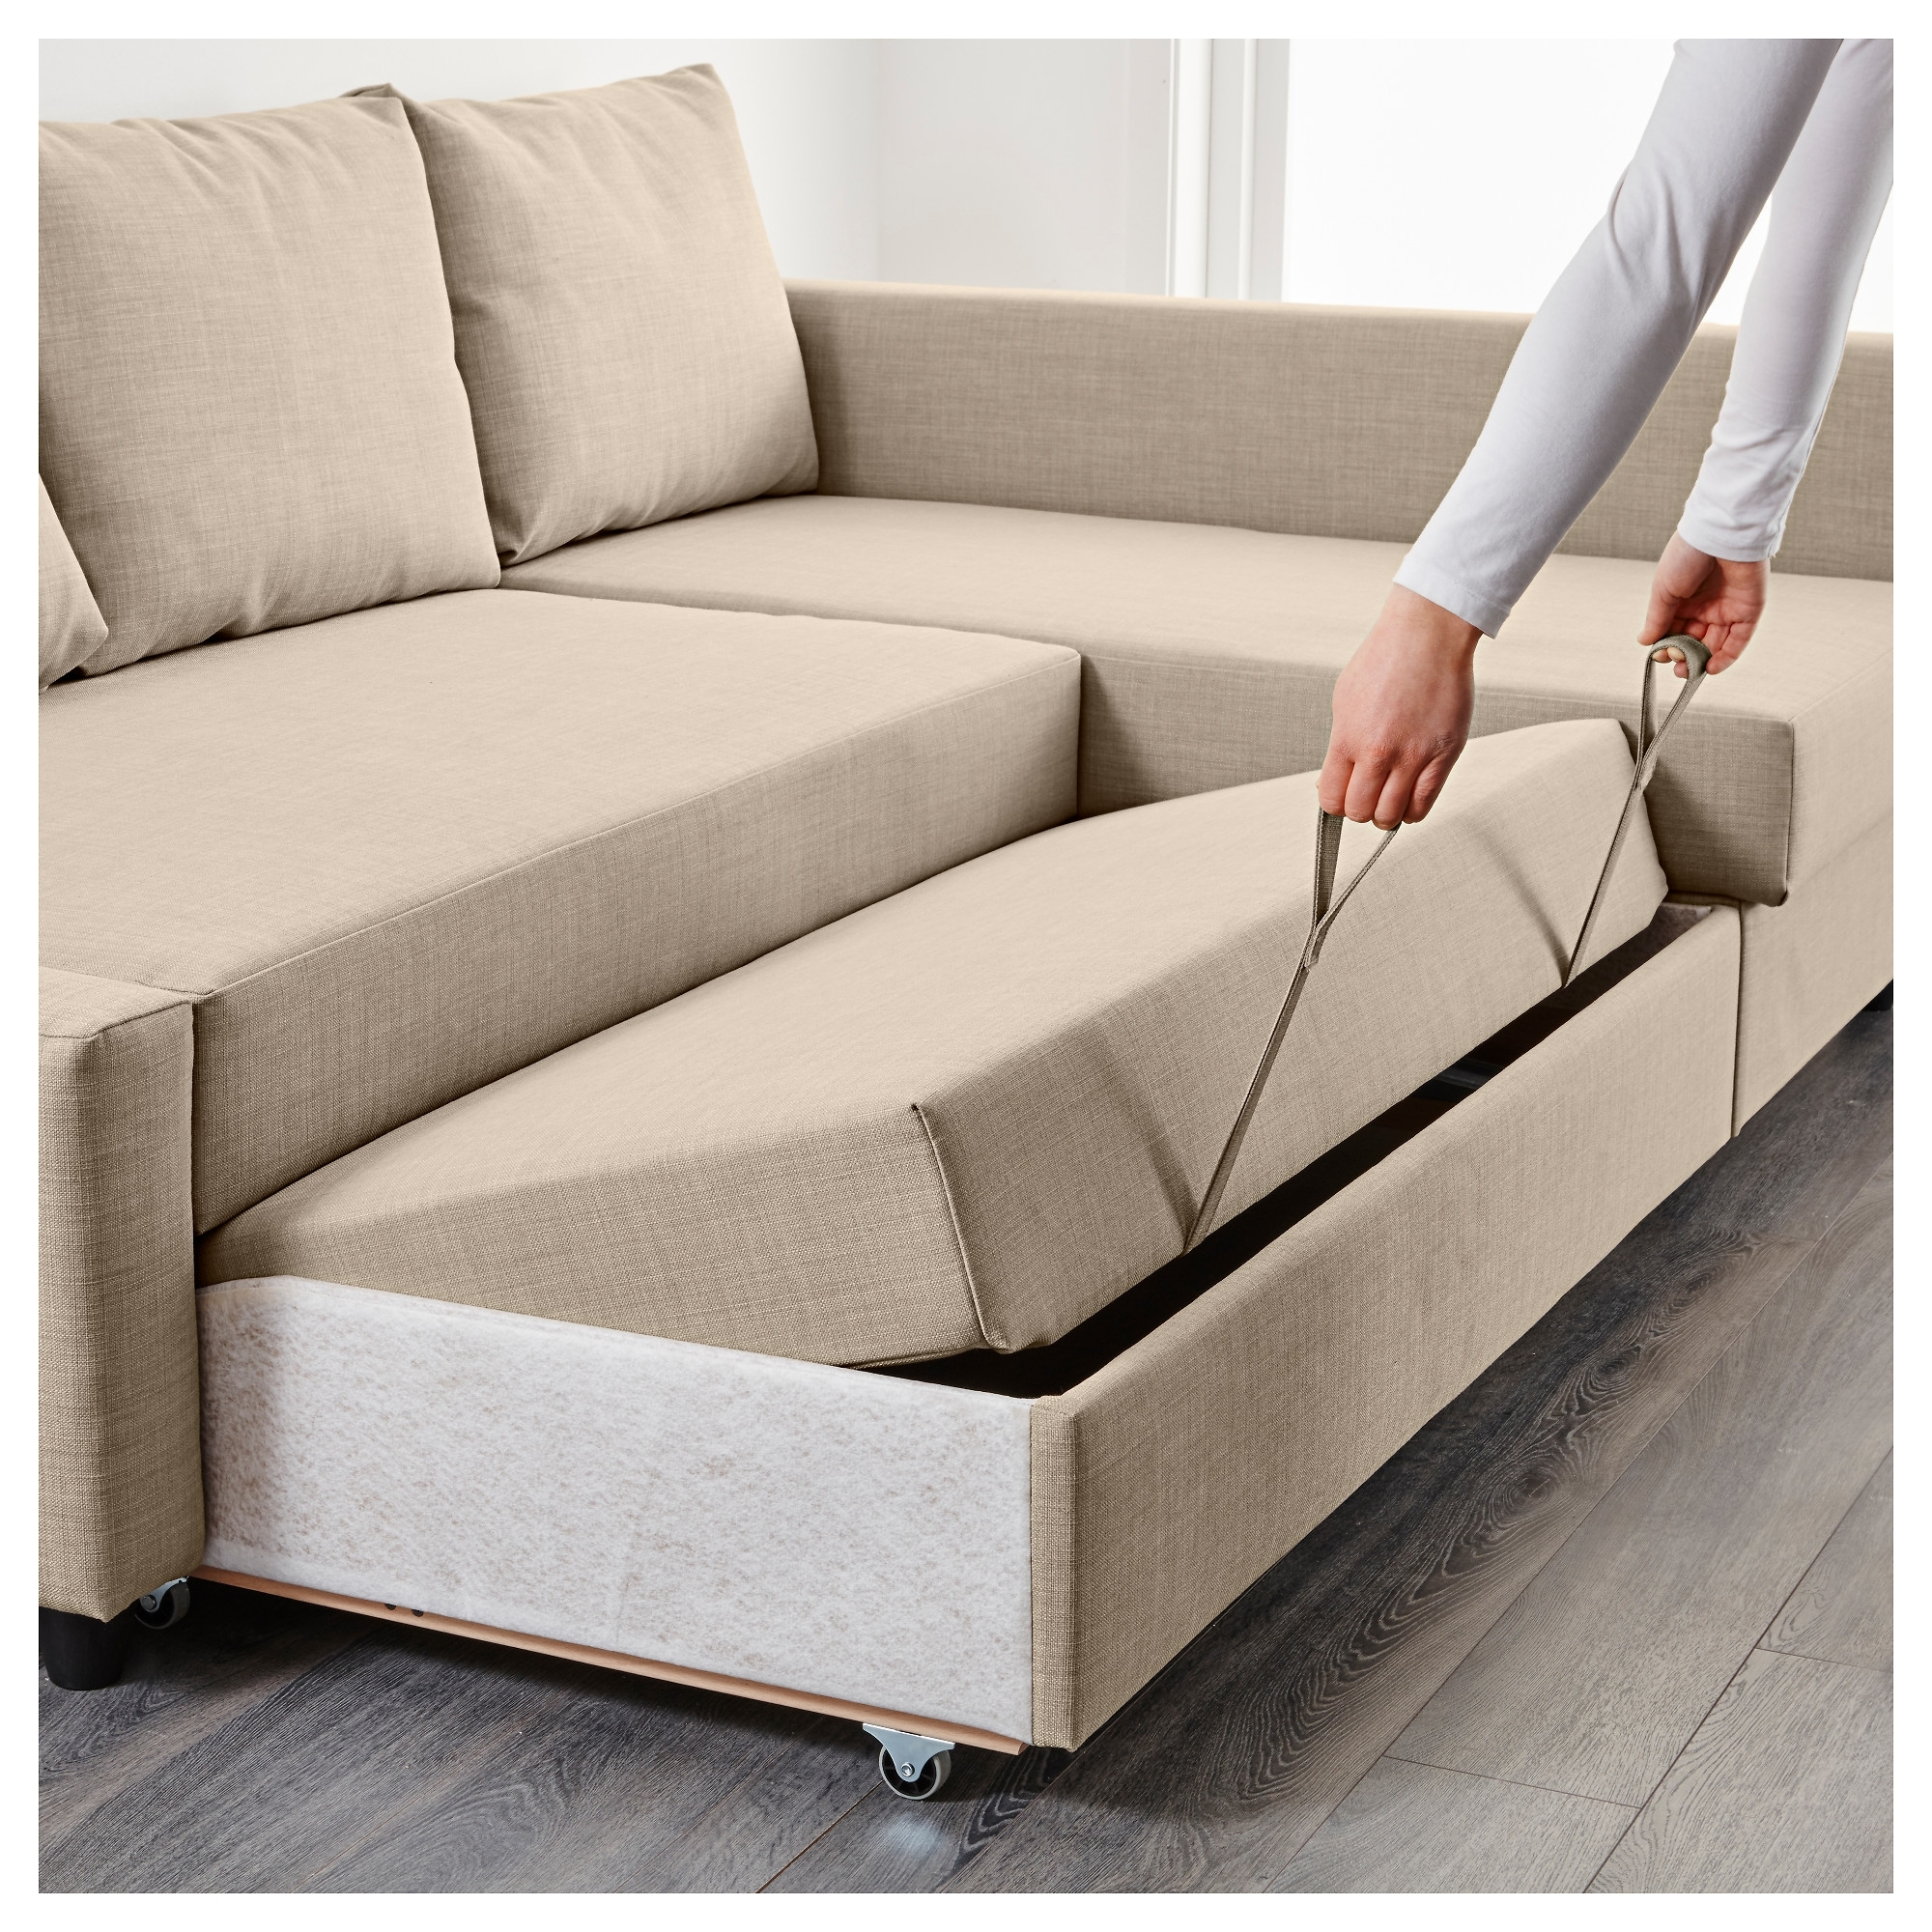 Favorite Friheten Corner Sofa Bed With Storage Skiftebo Beige – Ikea In Ikea Corner Sofas With Storage (View 4 of 15)